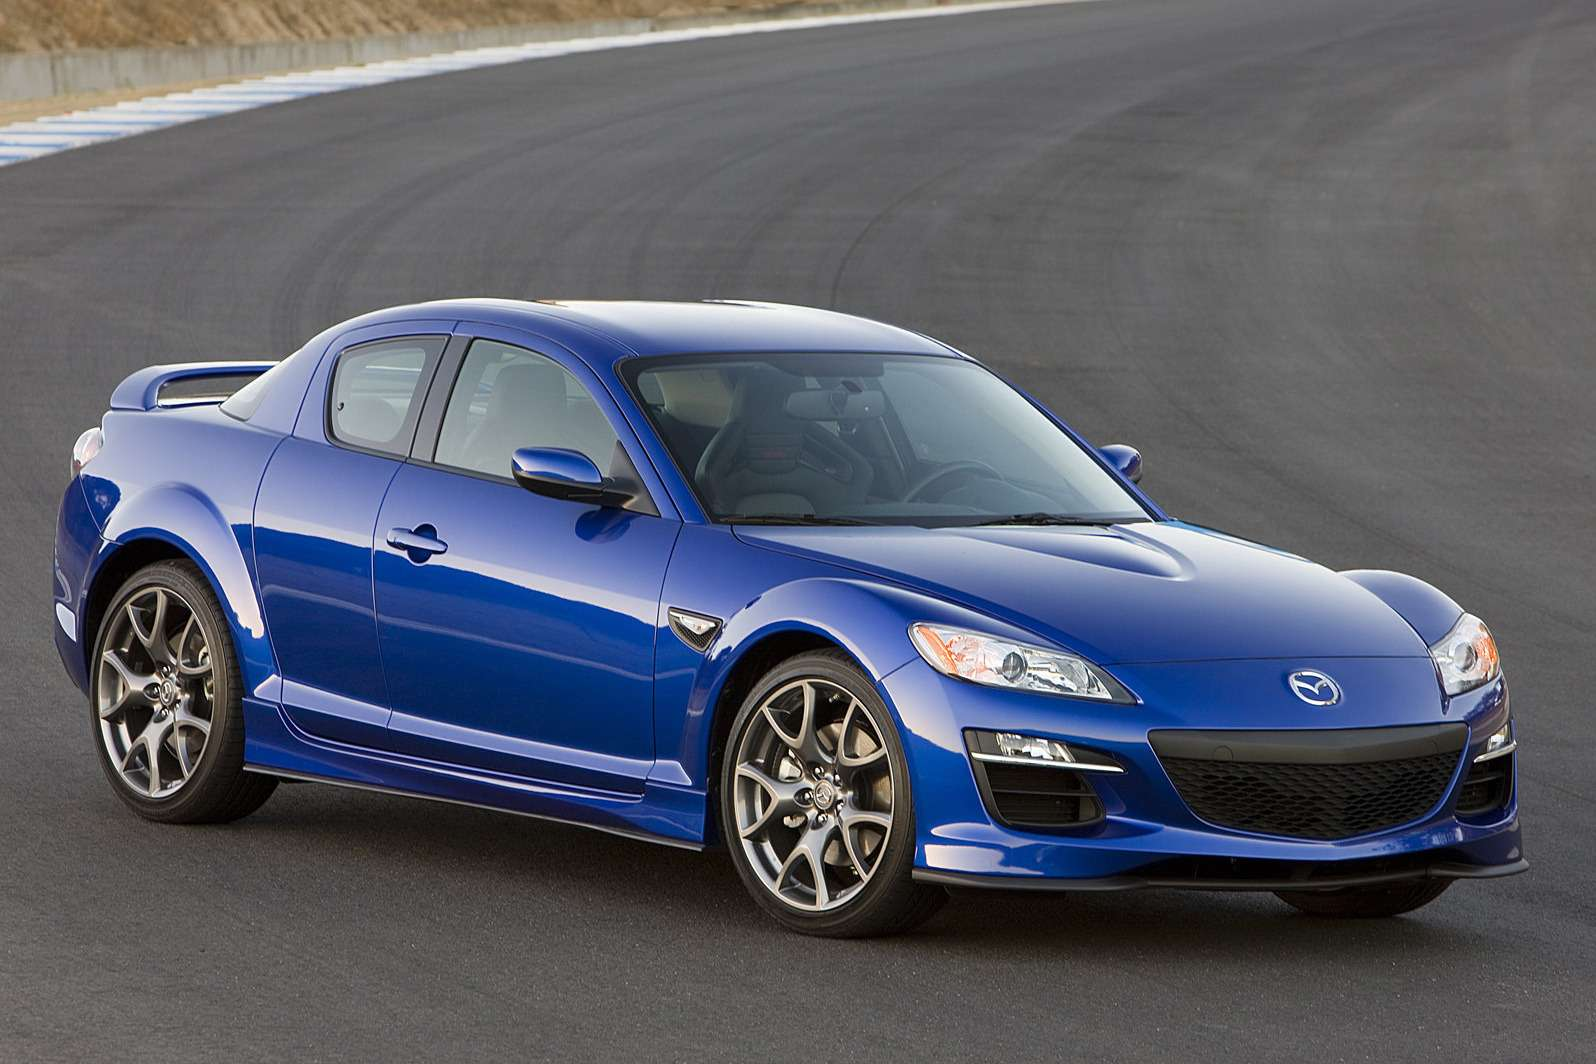 Mazda-RX-8_2009_1600x1200_wallpaper_04